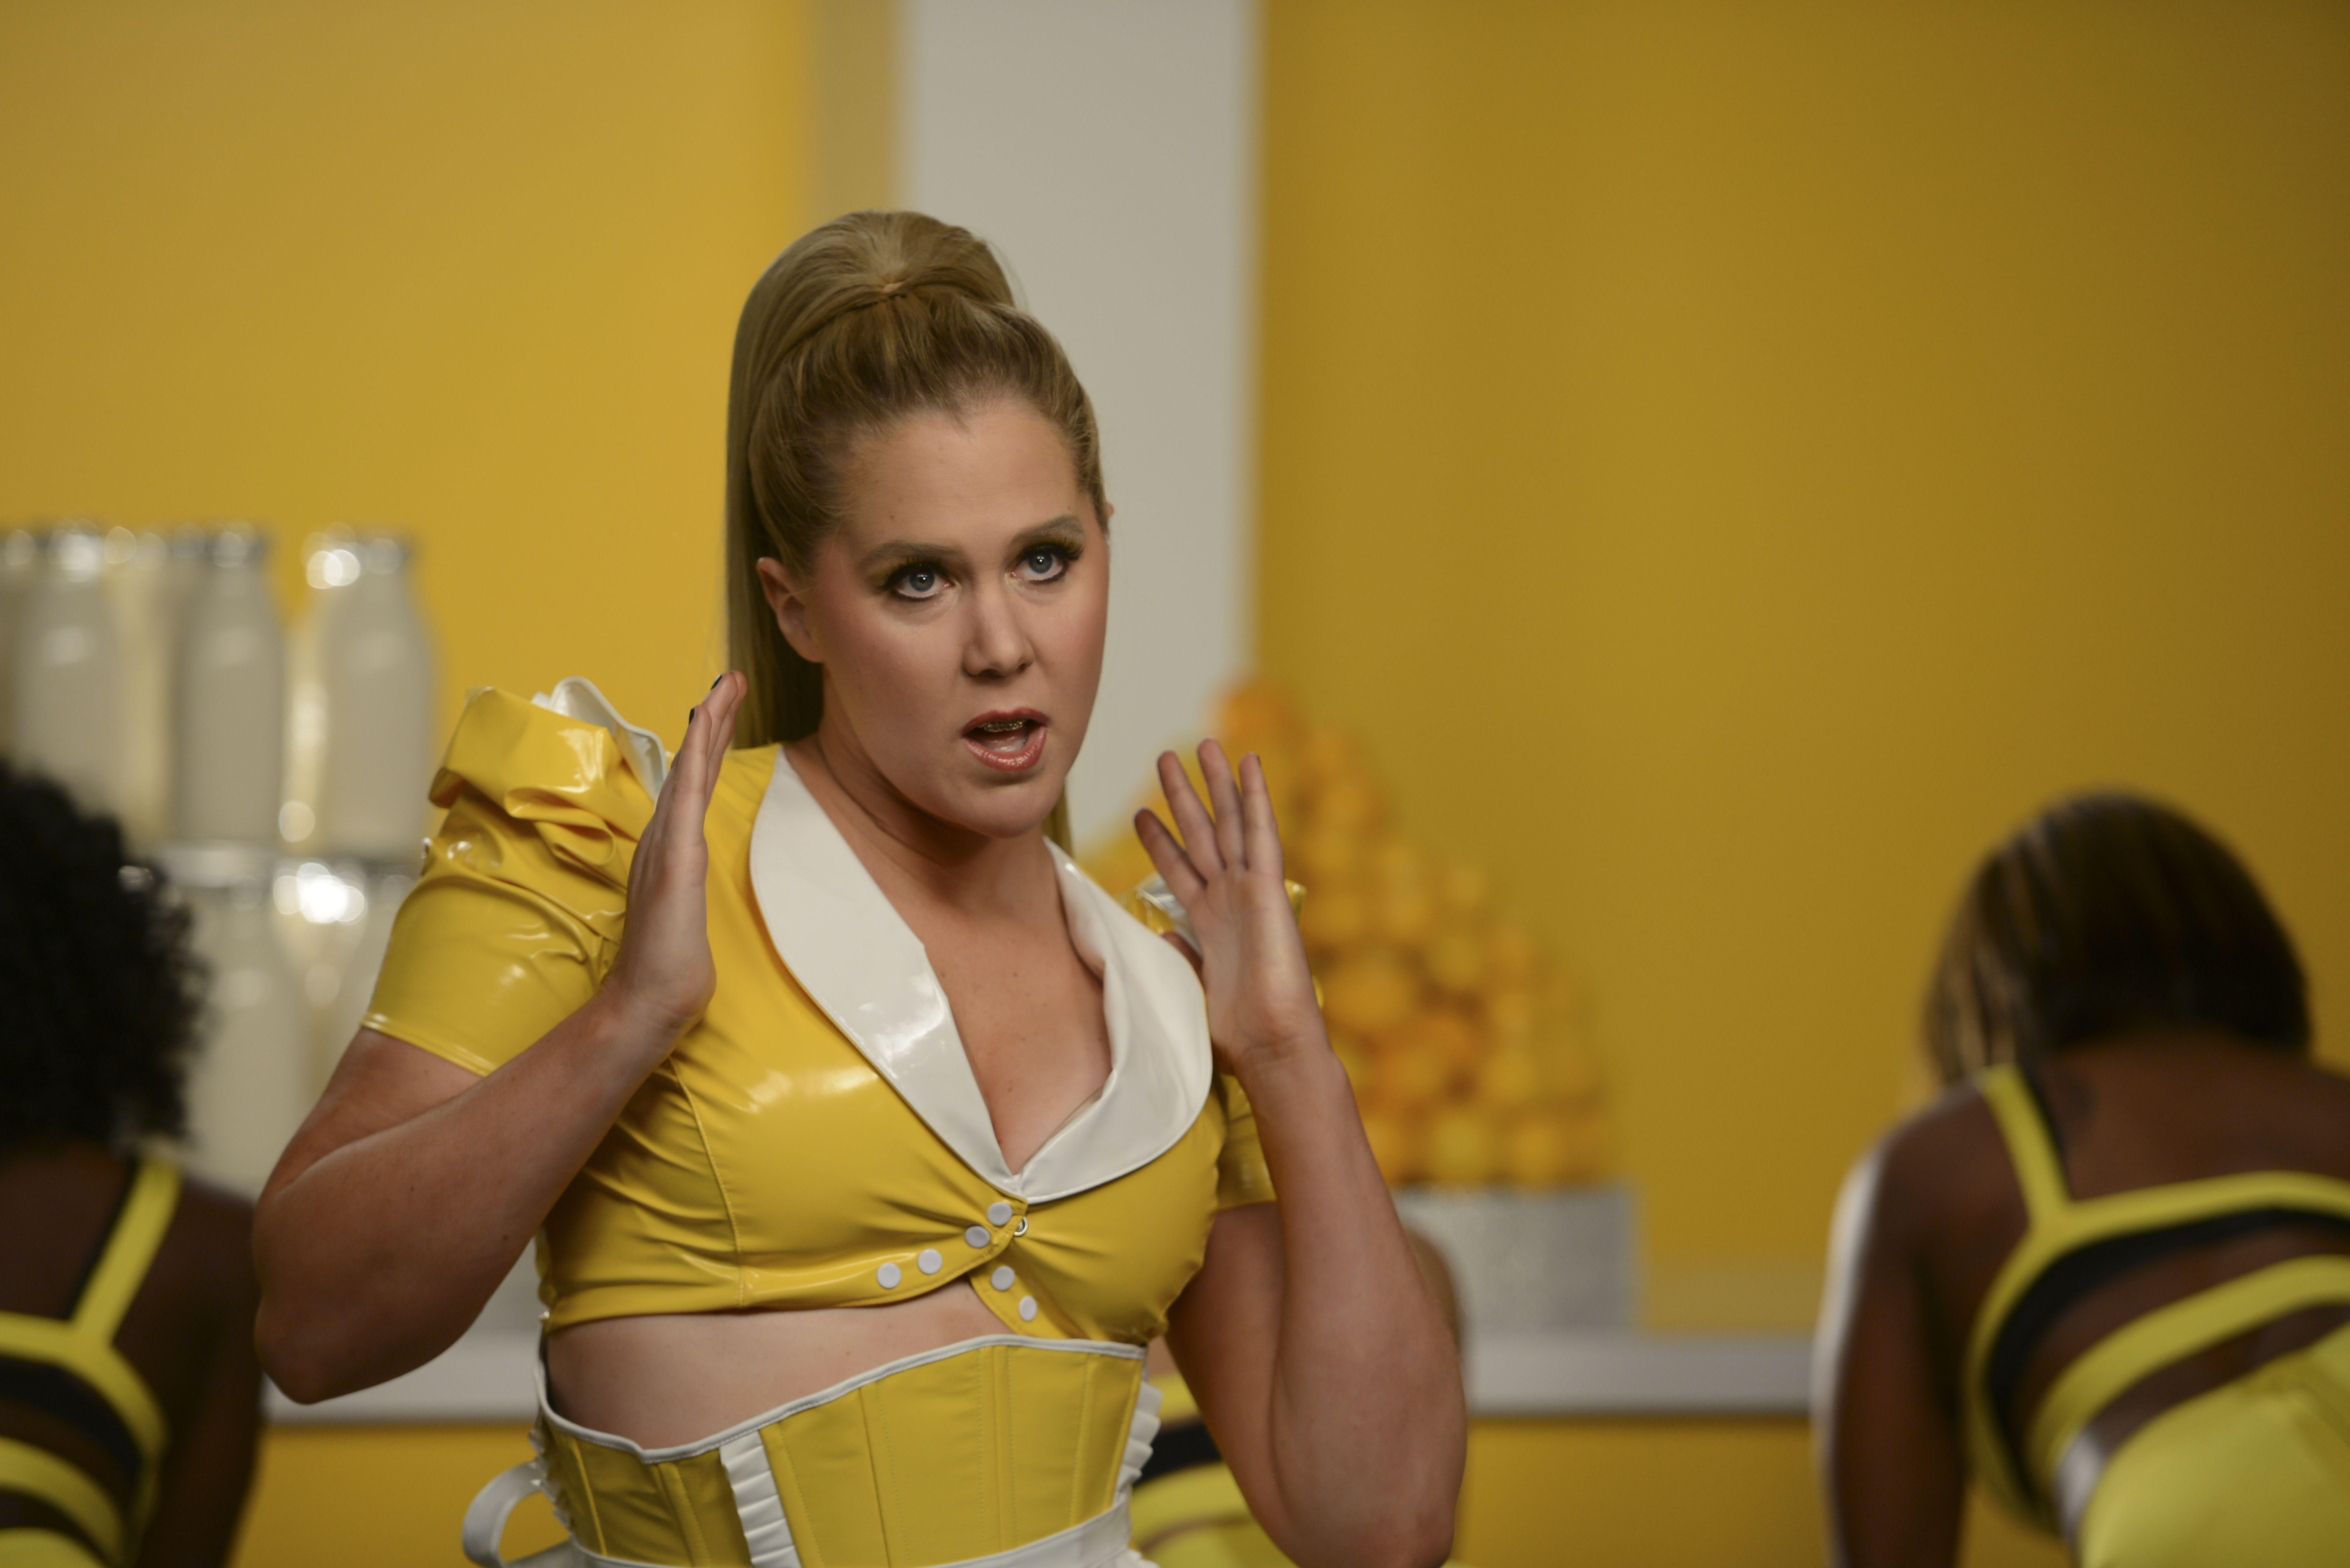 Amy Schumer dressed in yellow in a music video